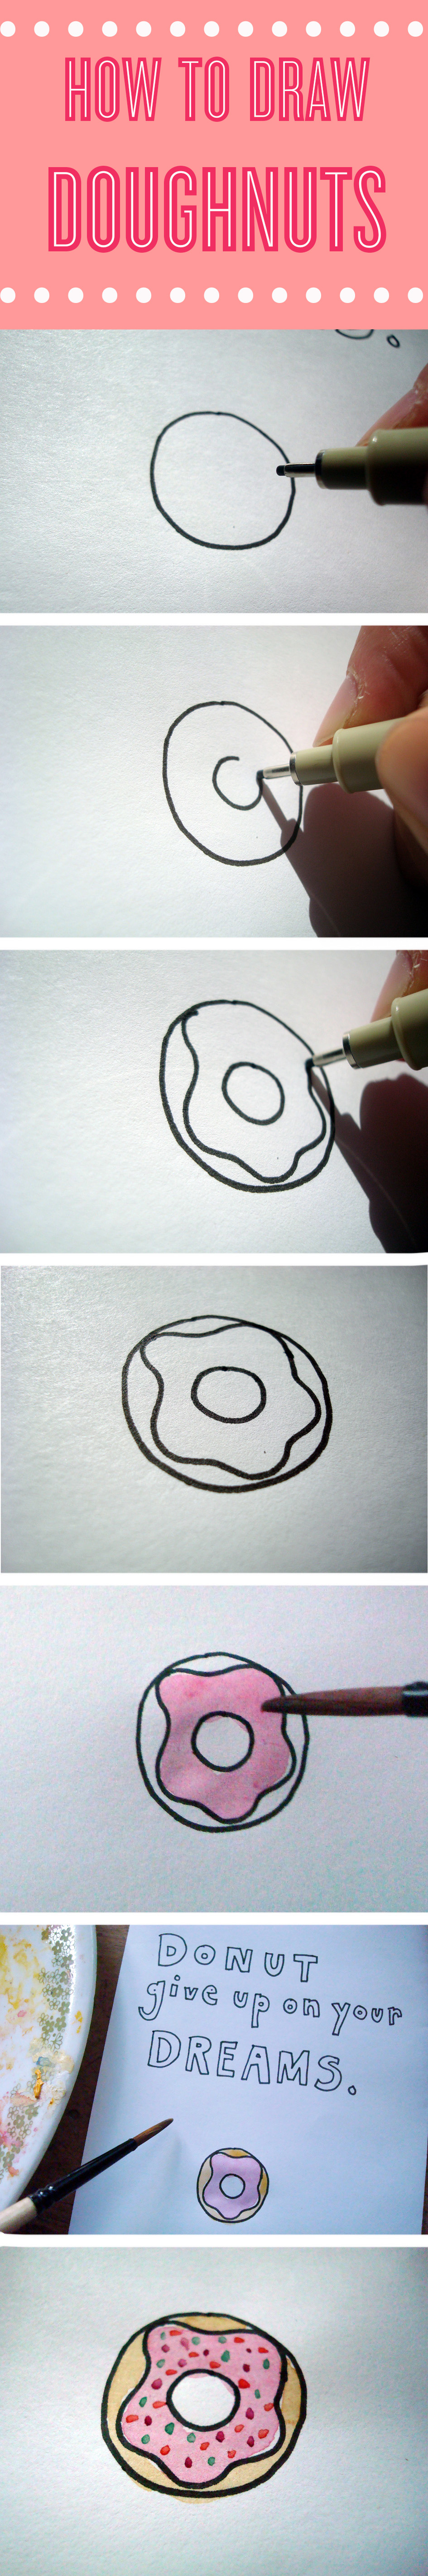 How to draw doughnuts